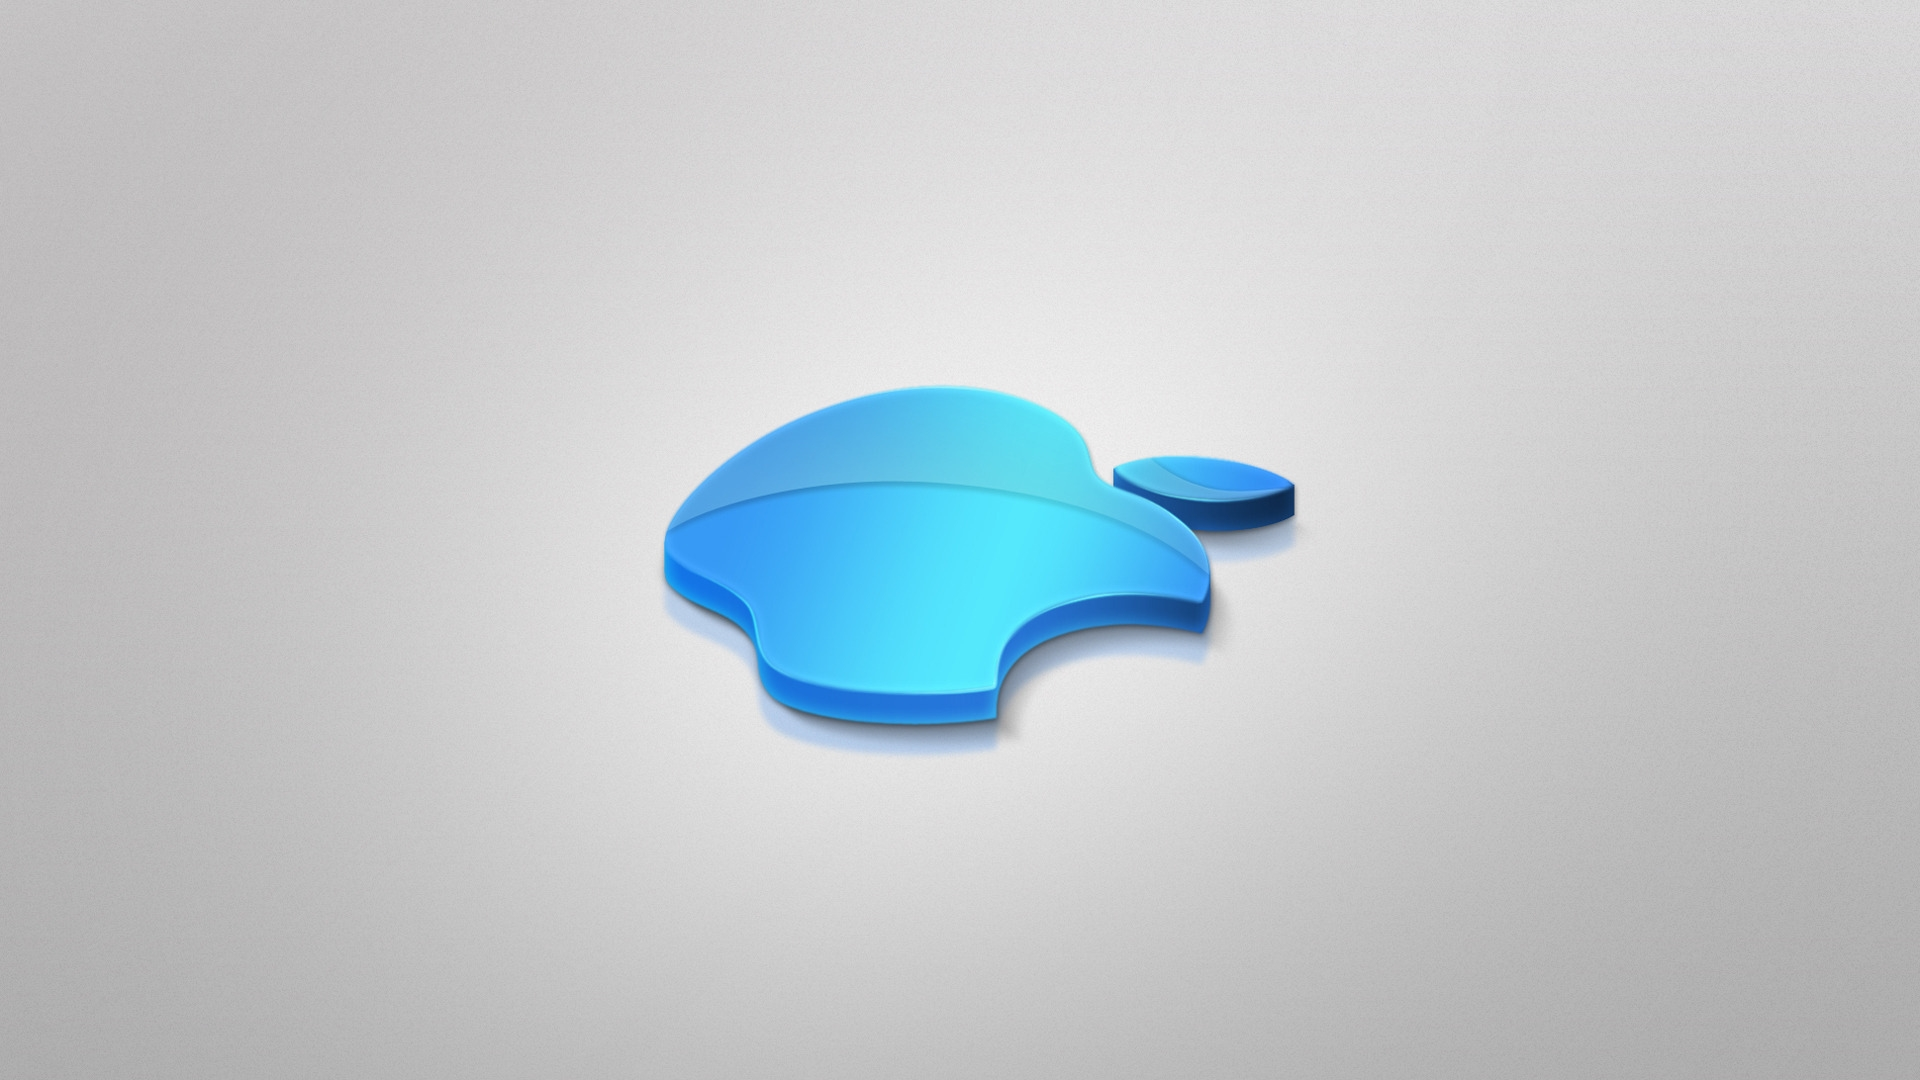 Apple Blue 3d 1080p